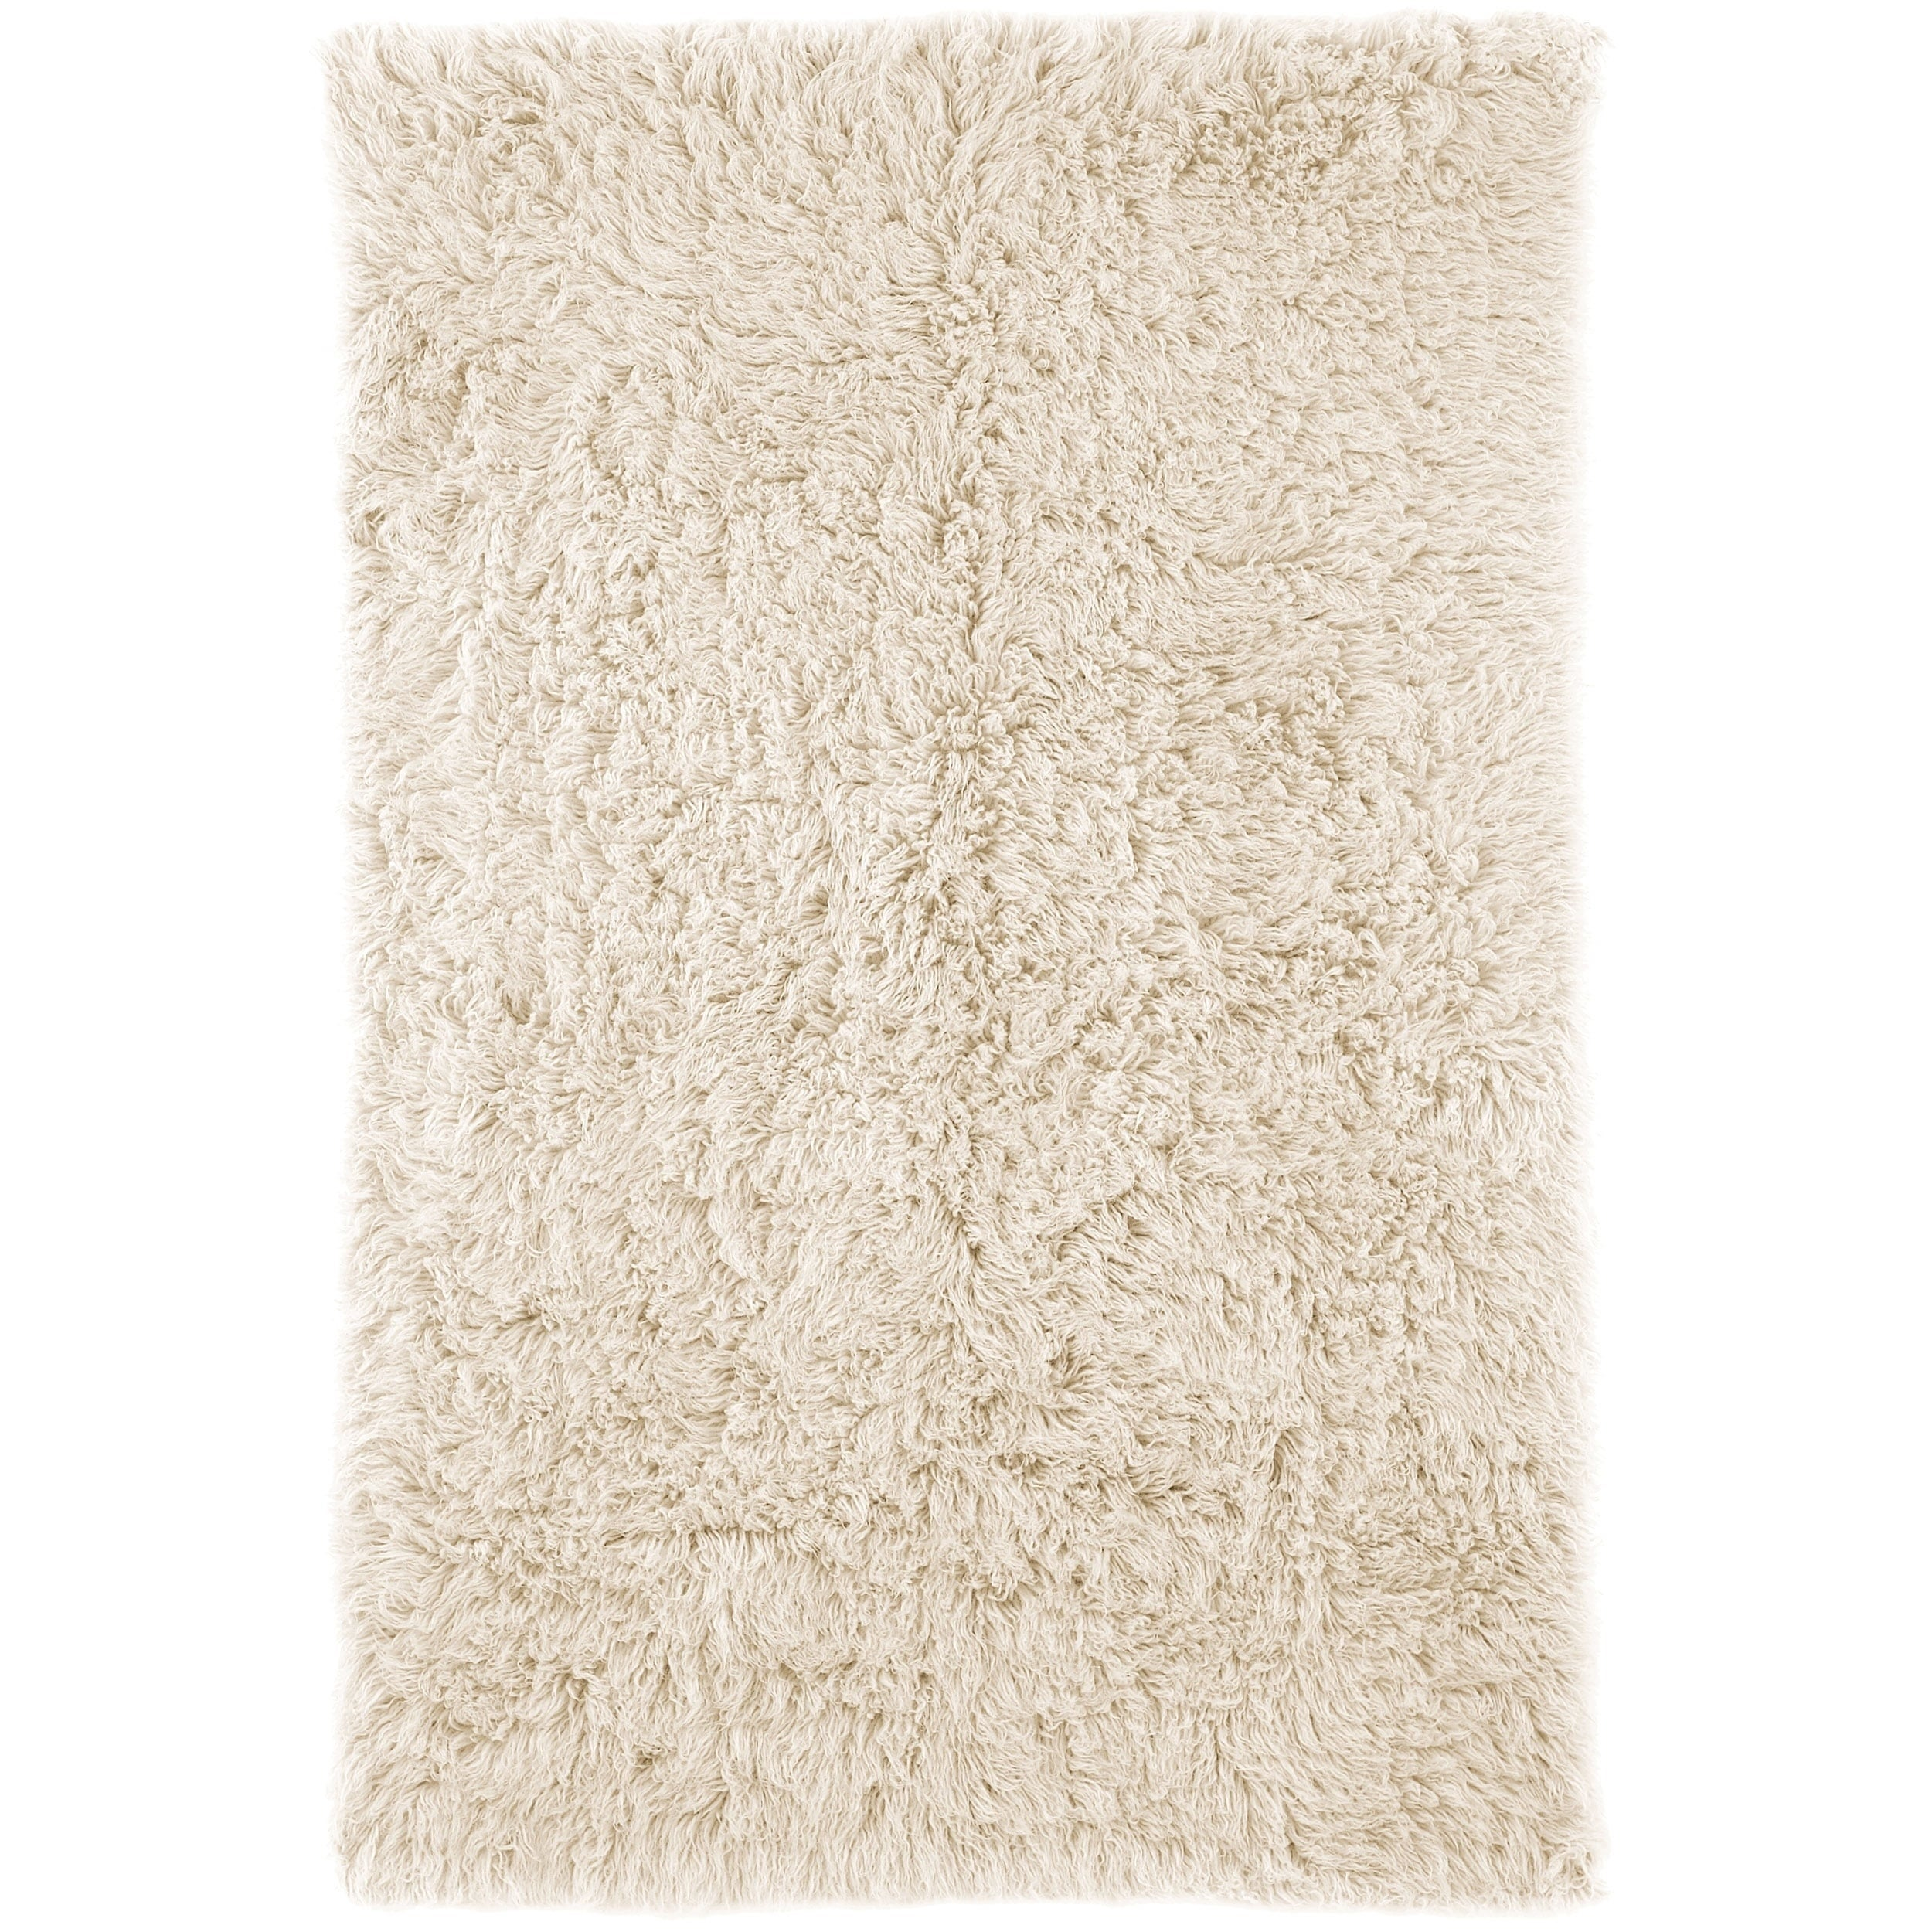 Nuloom Hand Woven Flokati Wool Shag Rug 5 X 7 On Free Shipping Today Com 3712645